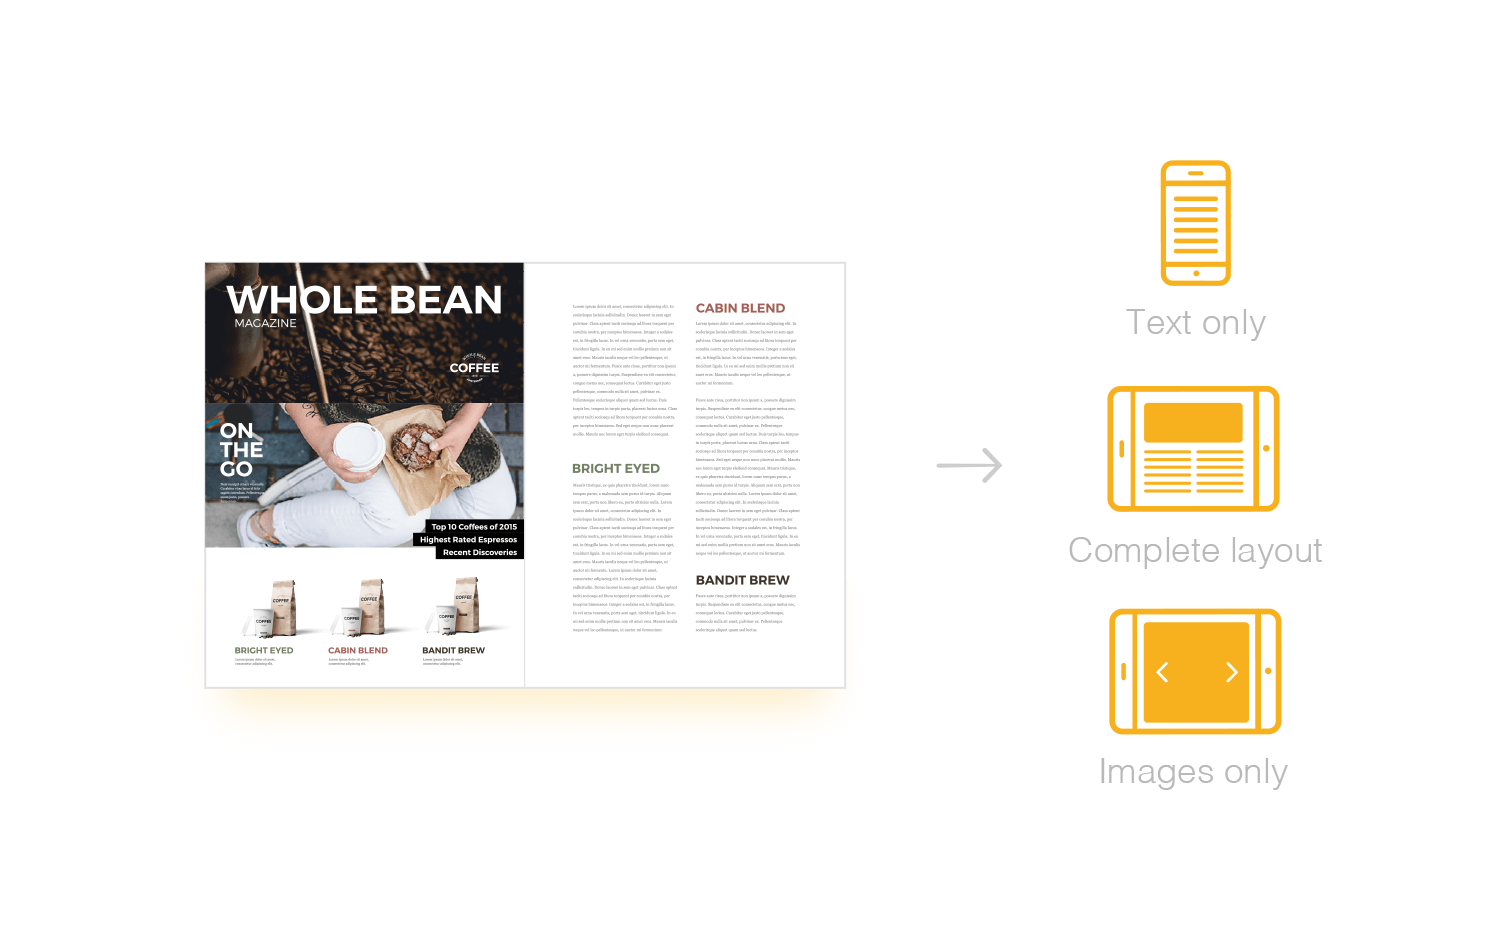 woodwing multi channel content creation 03 template